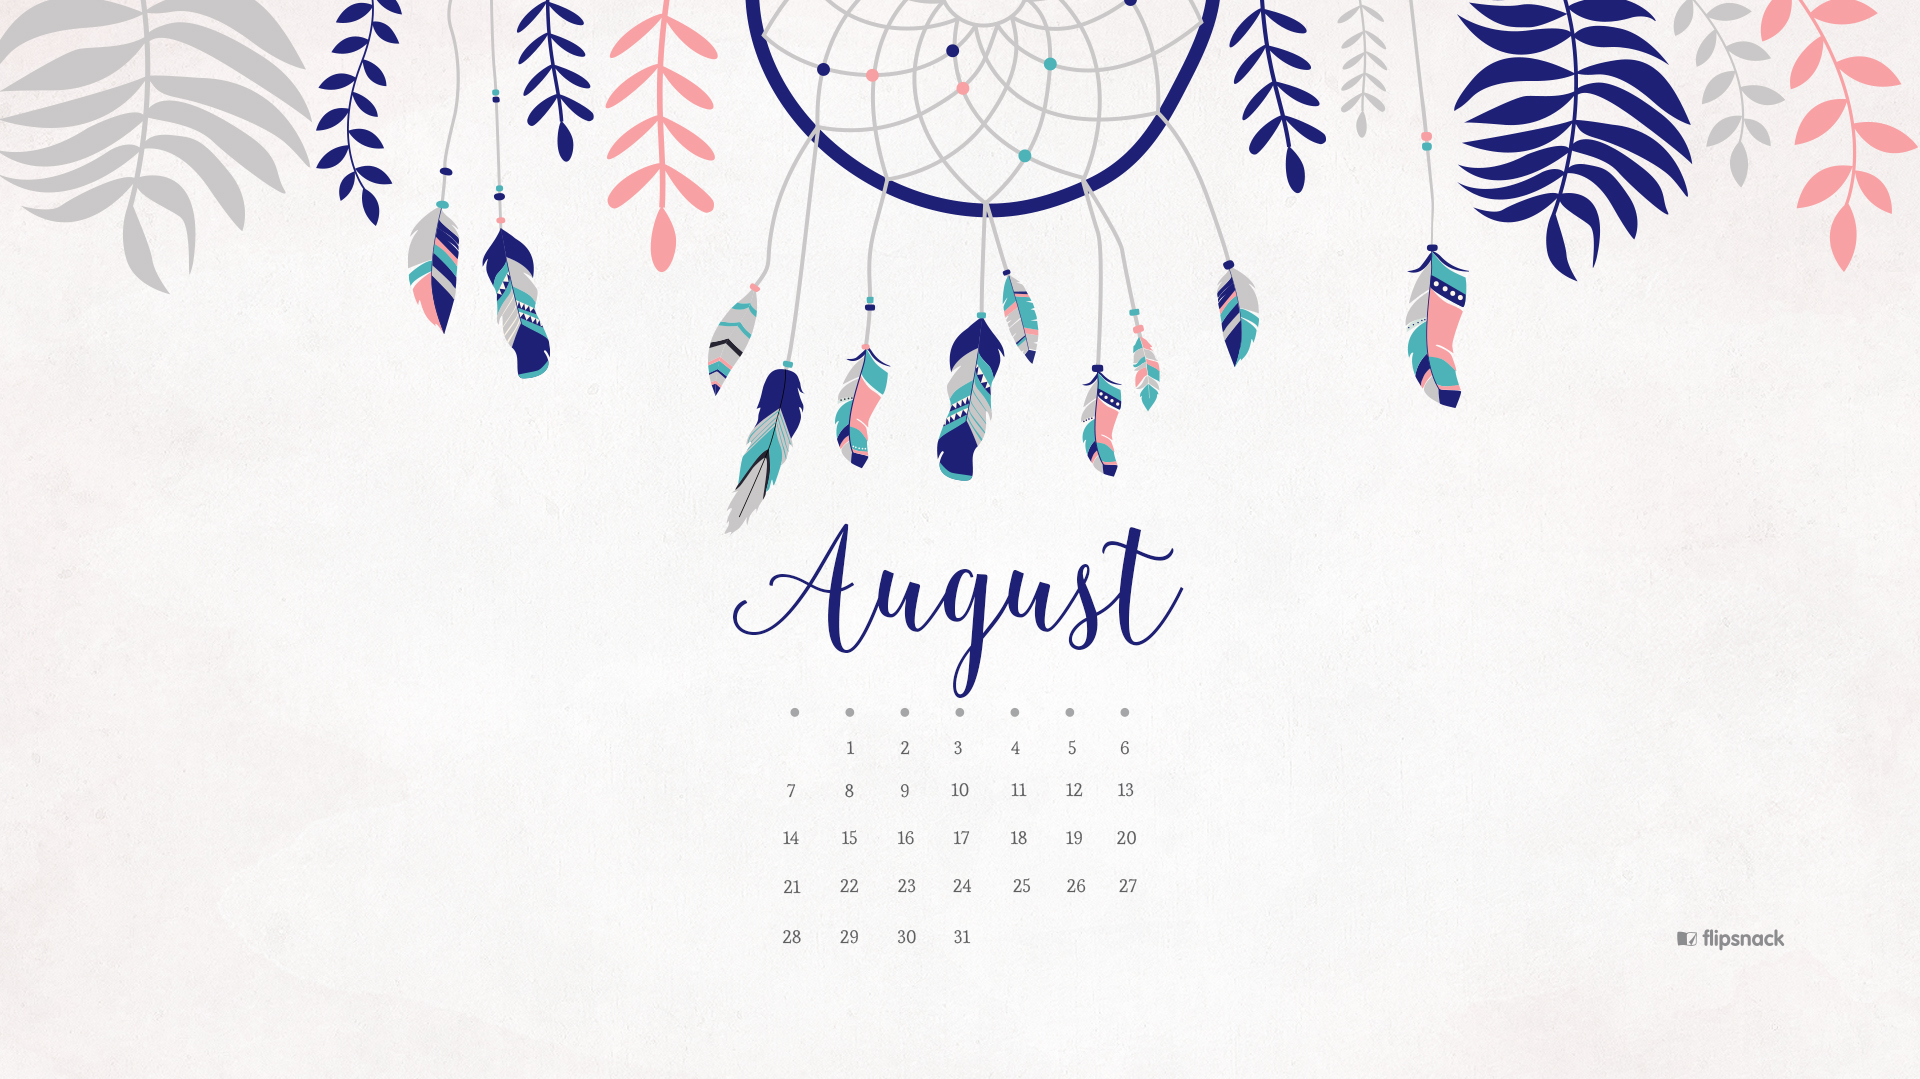 Calendar Wallpaper For Pc Desktop : August free calendar desktop wallpaper